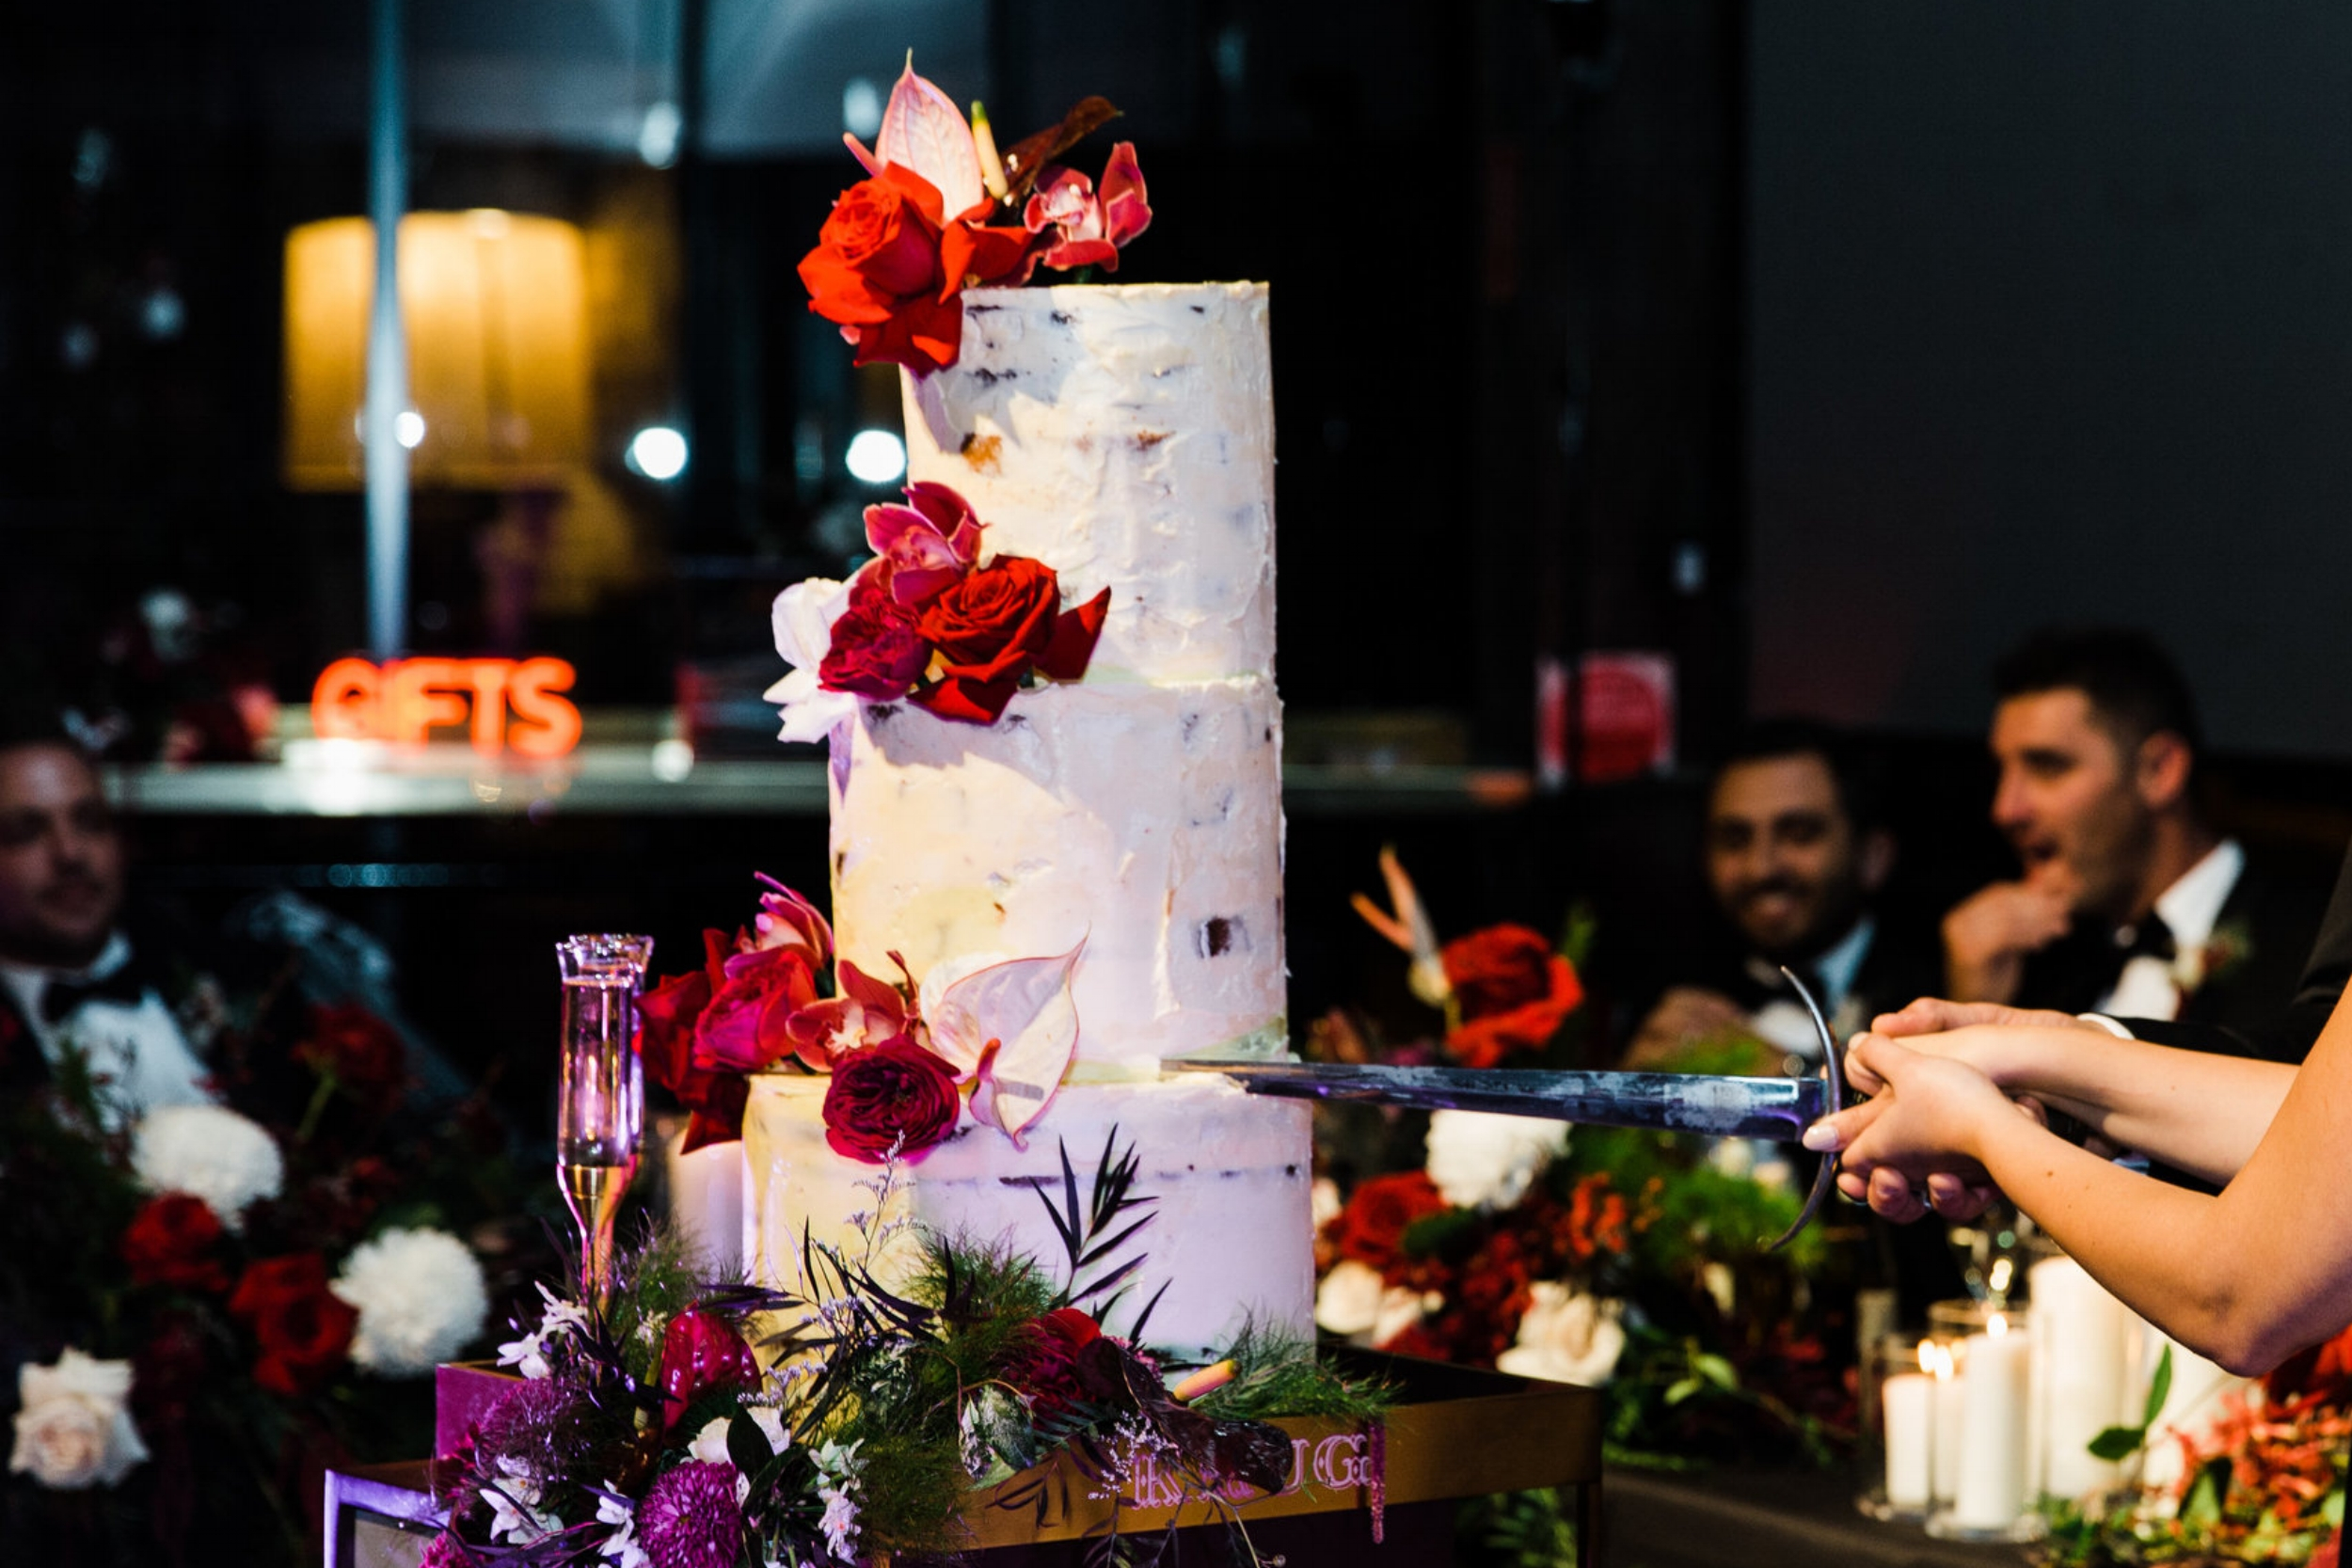 Cake decor - Your cake can be a showstopper on display prior to it being cut. We can decorate it with flowers and the table that it sits on, so it matches the rest of the wedding theme.